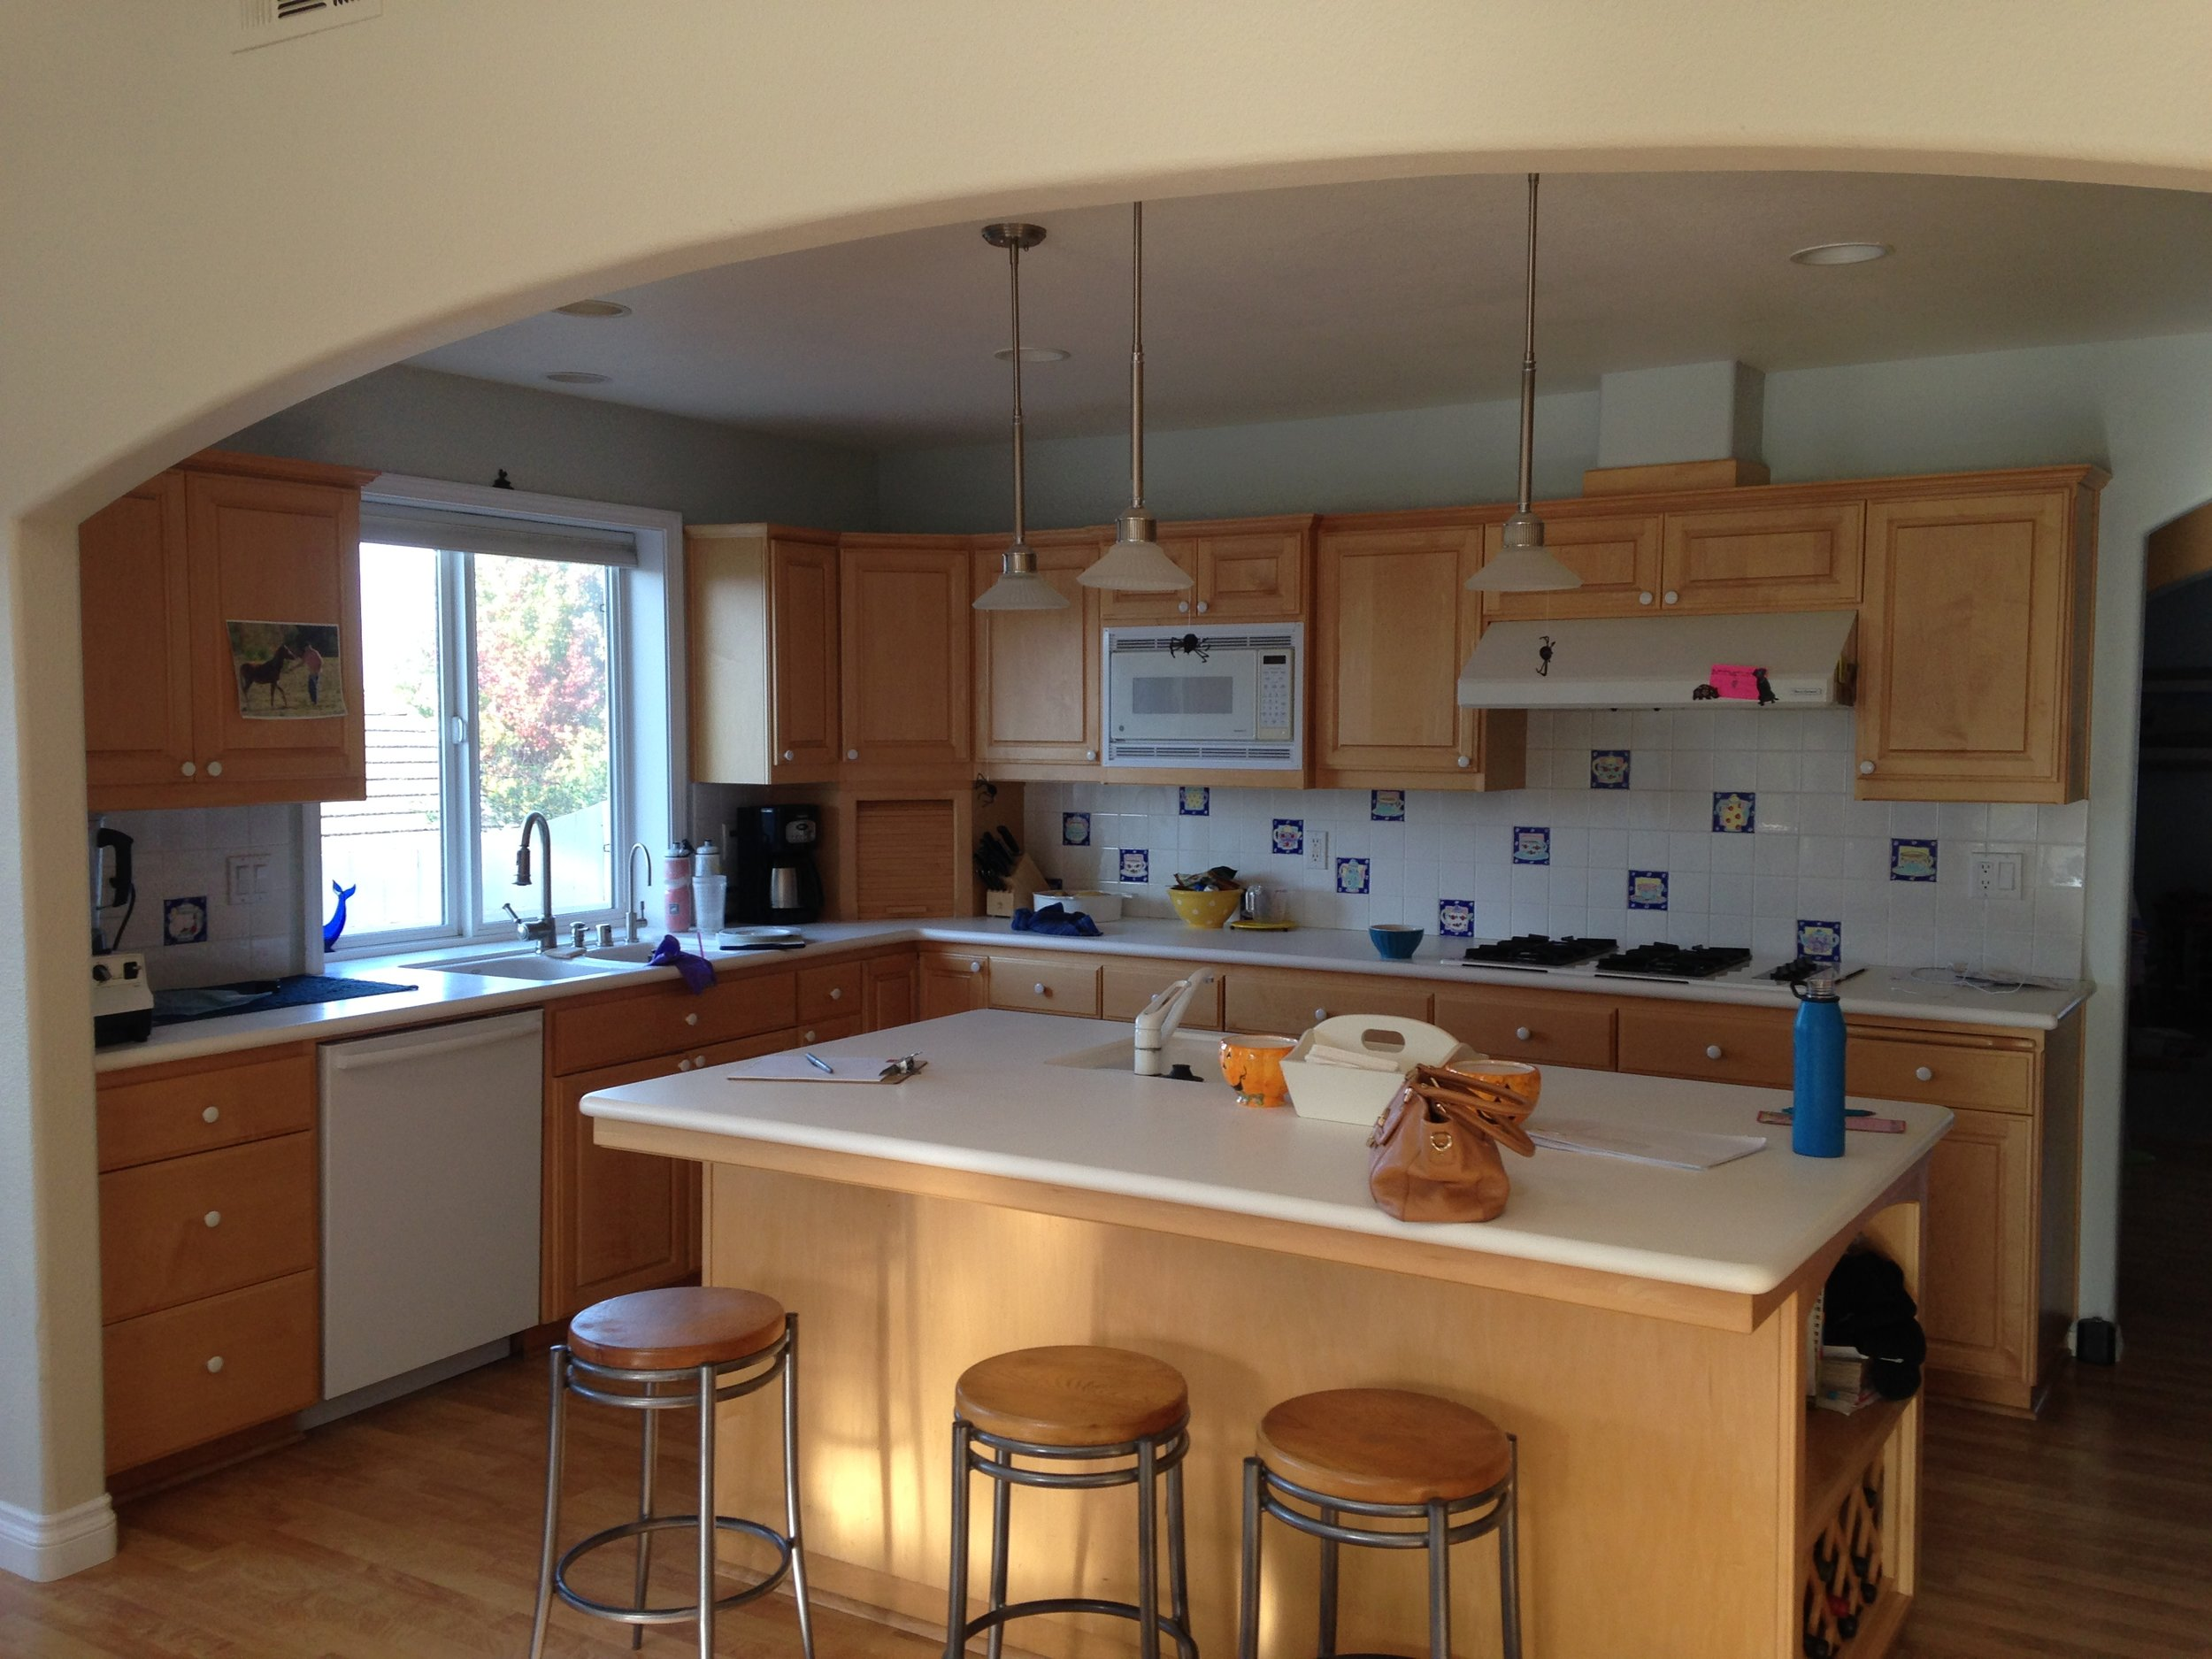 Los Osos Kitchen: Before